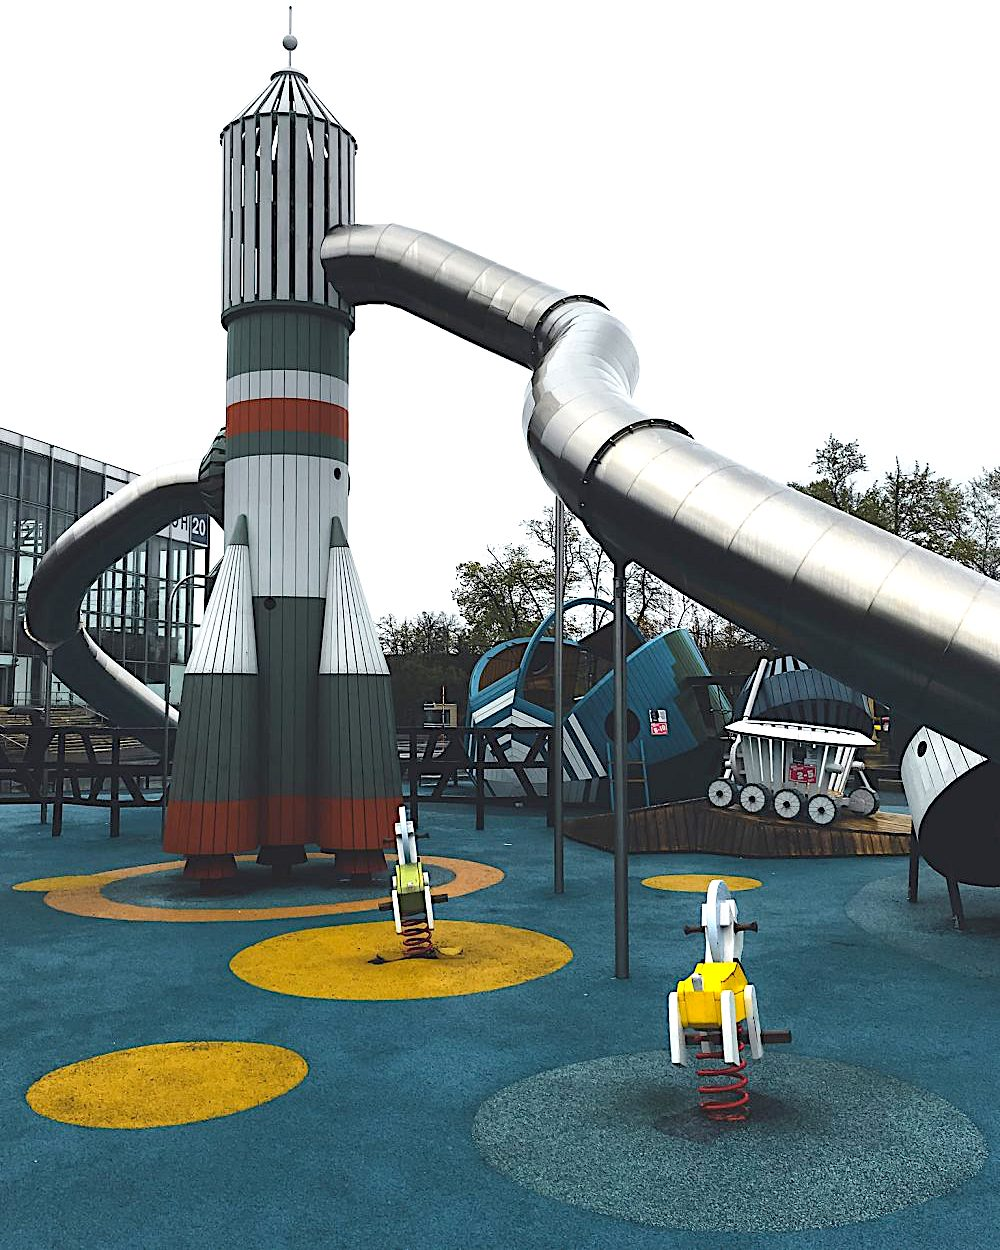 a 2000s playground in Russia with a space rocket theme